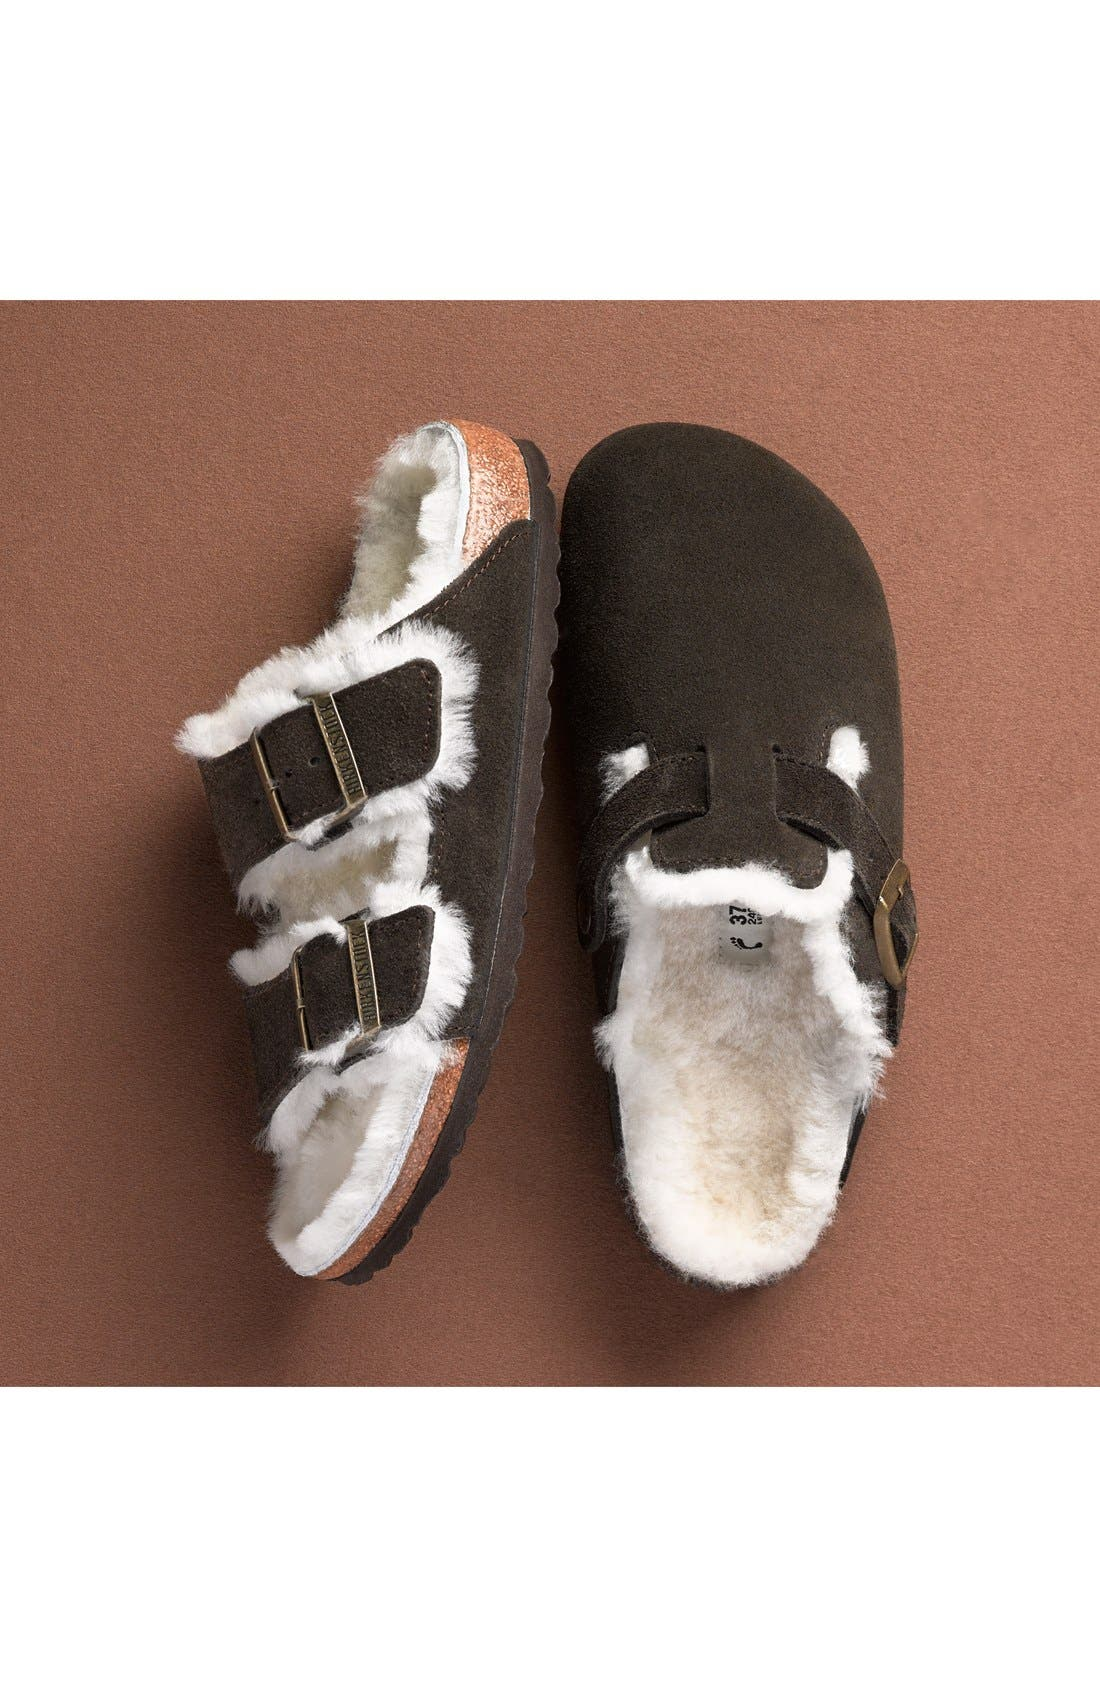 'Boston' Genuine Shearling Lined Clog,                             Alternate thumbnail 9, color,                             FOREST/ NATURAL SUEDE